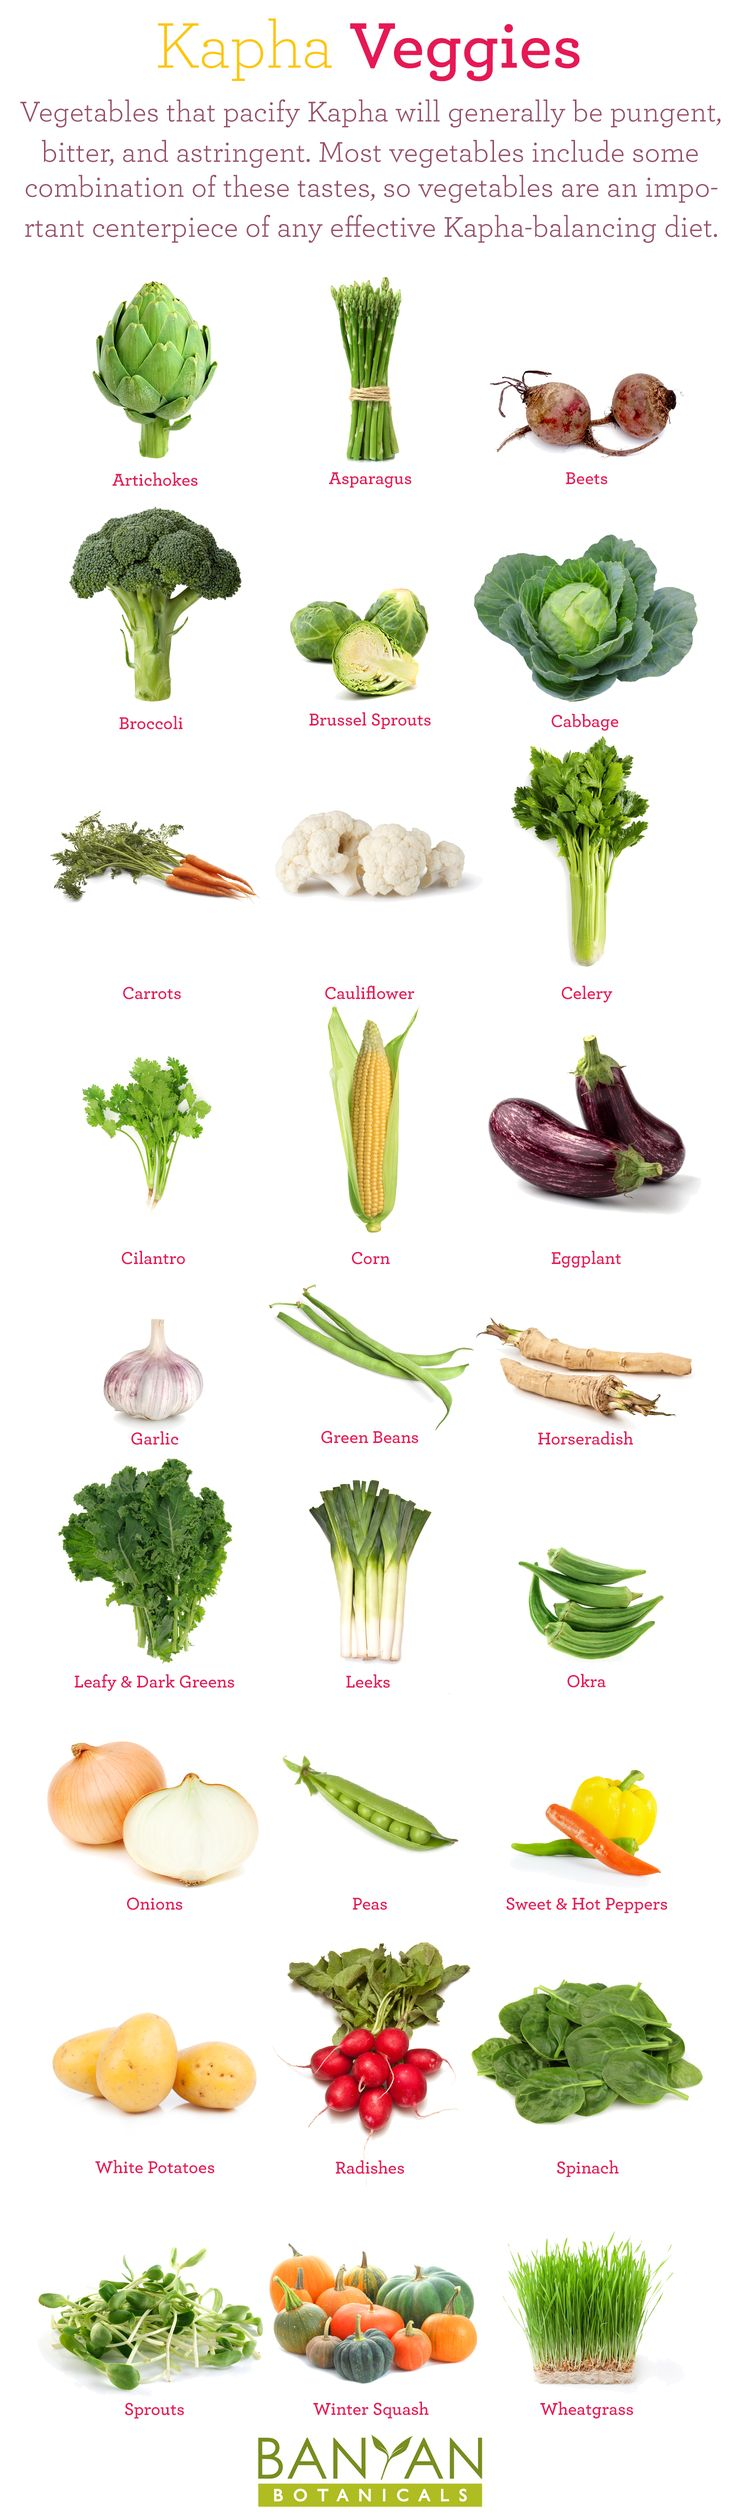 Vegetables that pacify Kapha will generally be pungent, bitter, and astringent. Most vegetables include some combination of these tastes, so vegetables are an important centerpiece of any Kapha-balancing diet. http://www.shivohamyoga.nl/ #health #food #ayurvedic